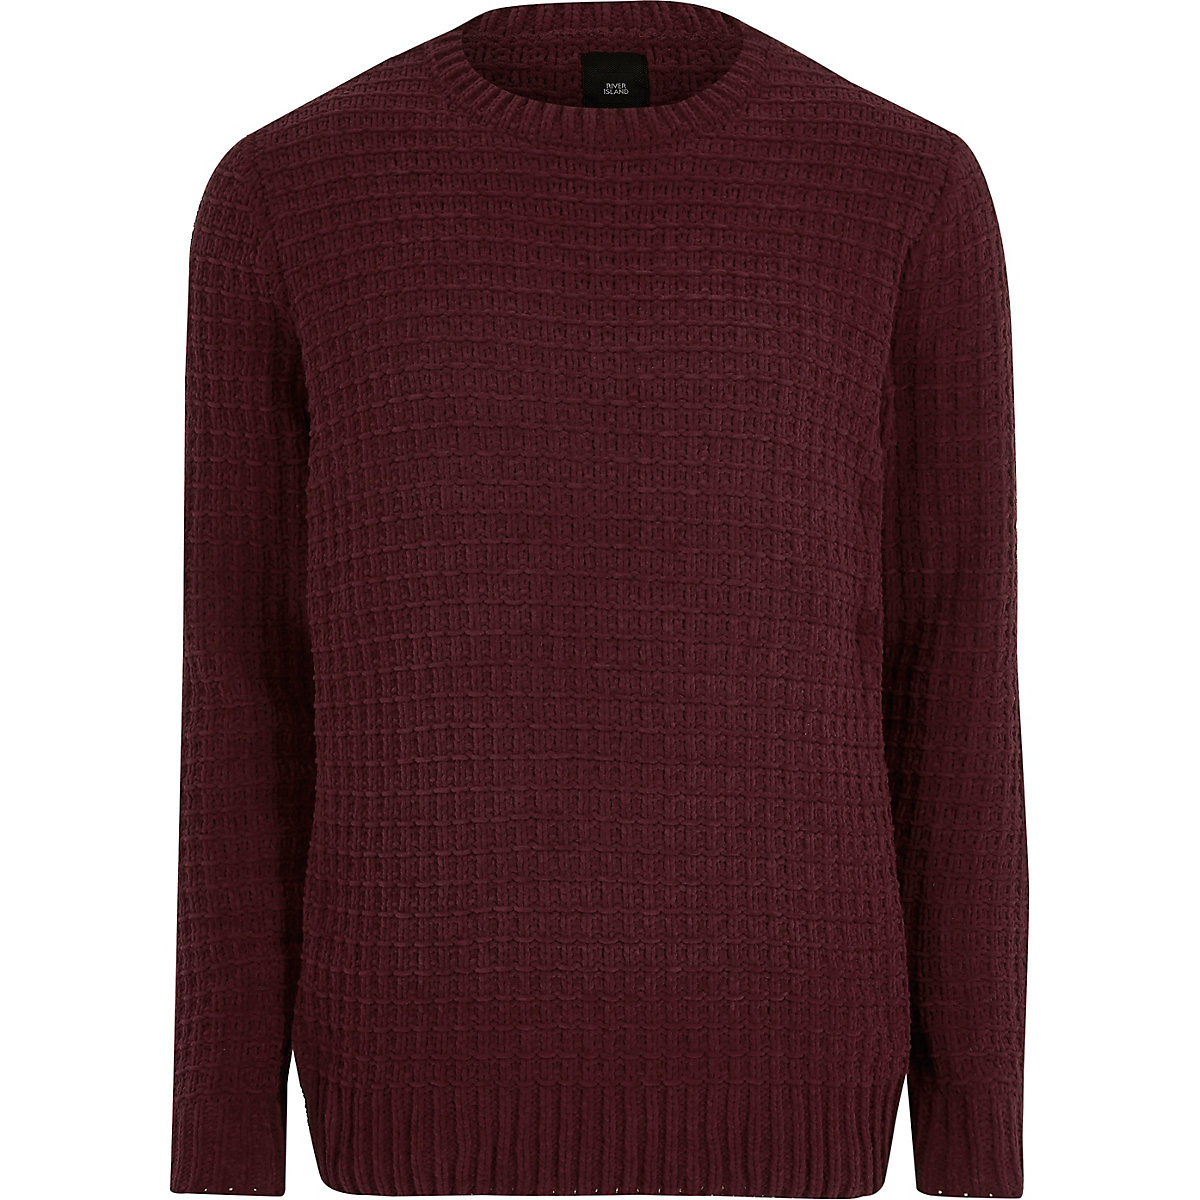 Burgundy textured chenille knit sweater